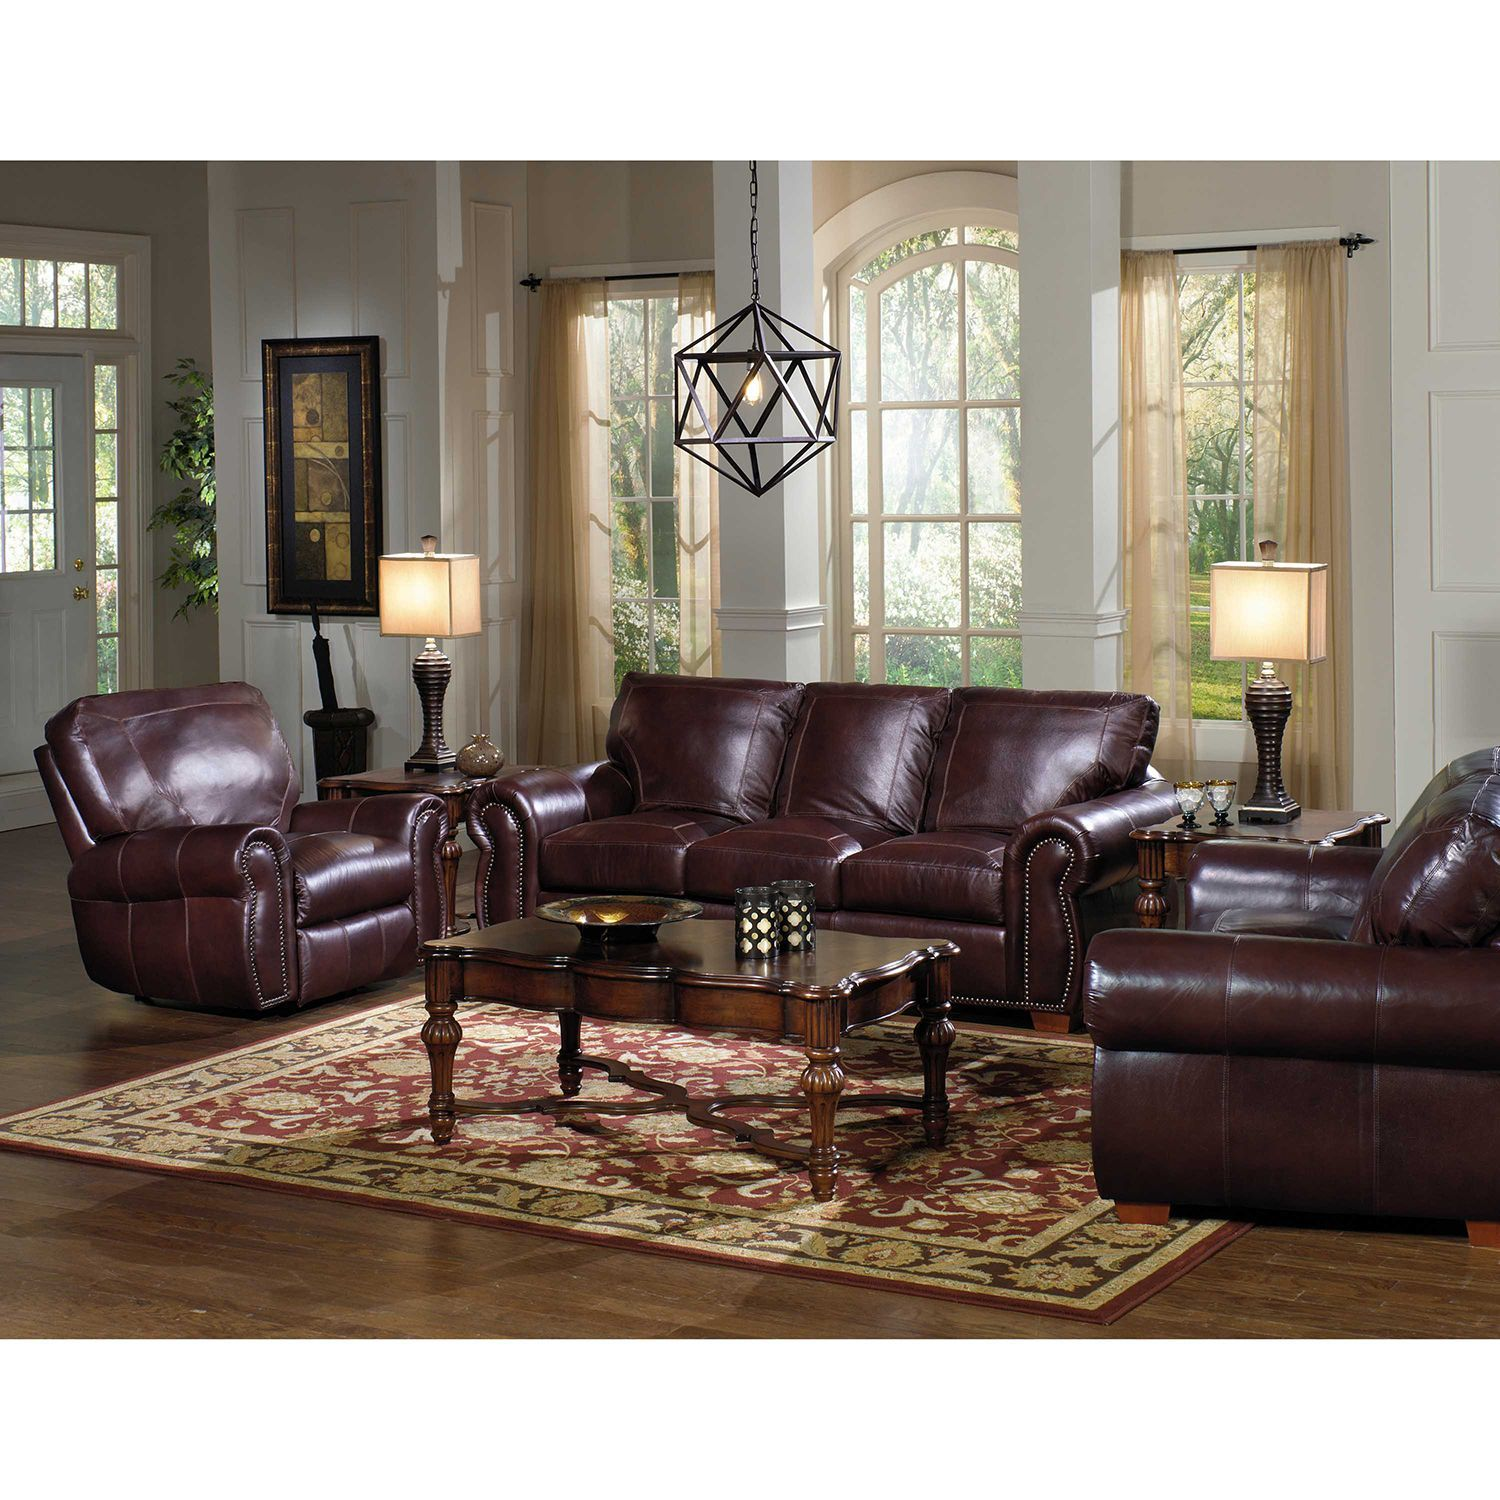 Decorate your castle in quintessential elegance with the - Leather furniture for small living room ...